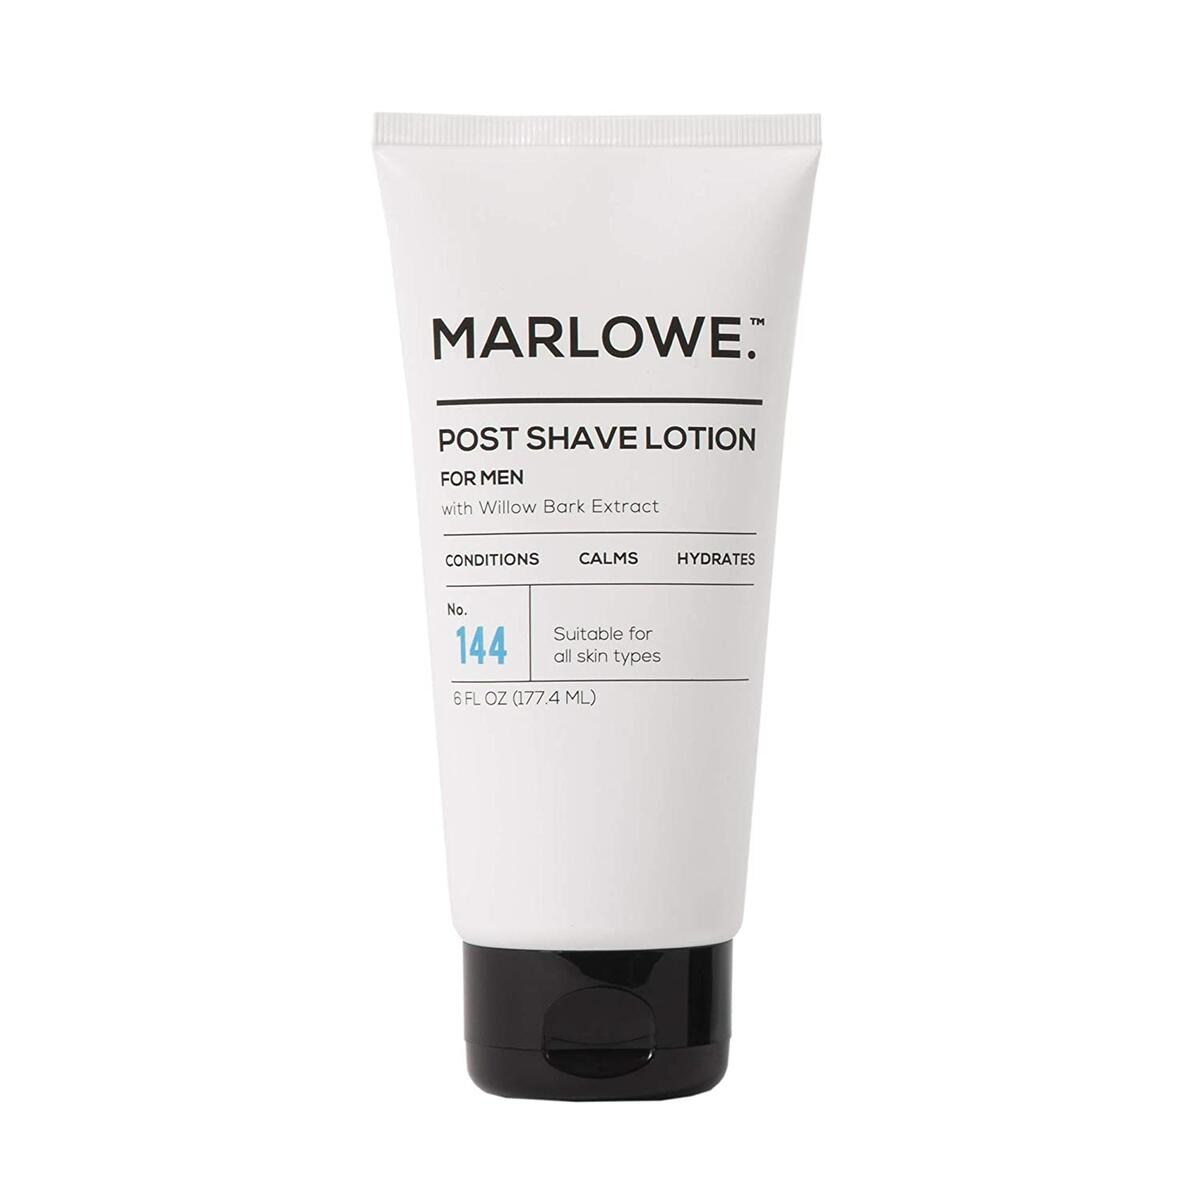 MARLOWE. No. 144 Aftershave / Post Shave Lotion for Men 6 Oz